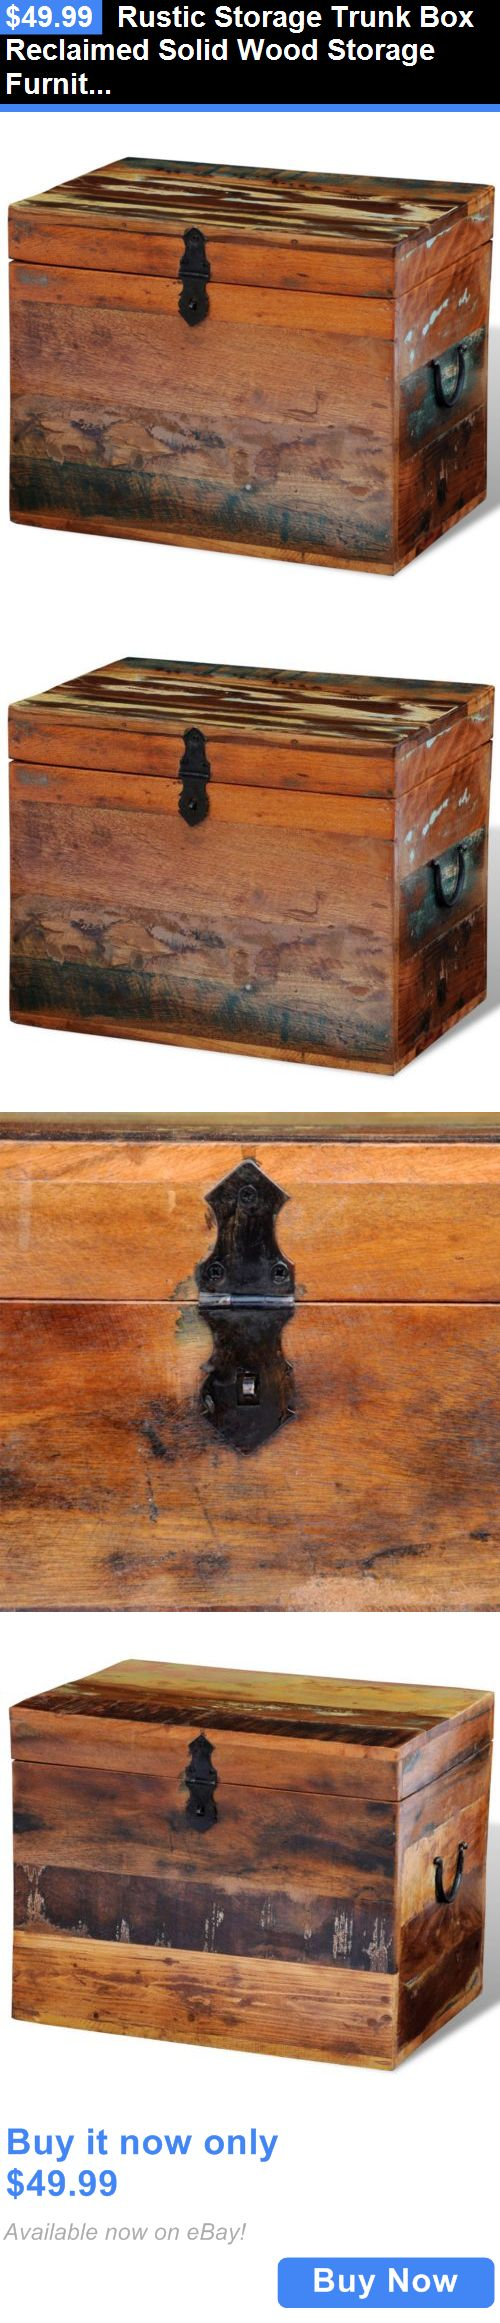 Antiques: Rustic Storage Trunk Box Reclaimed Solid Wood Storage Furniture Vintage Style BUY IT NOW ONLY: $49.99